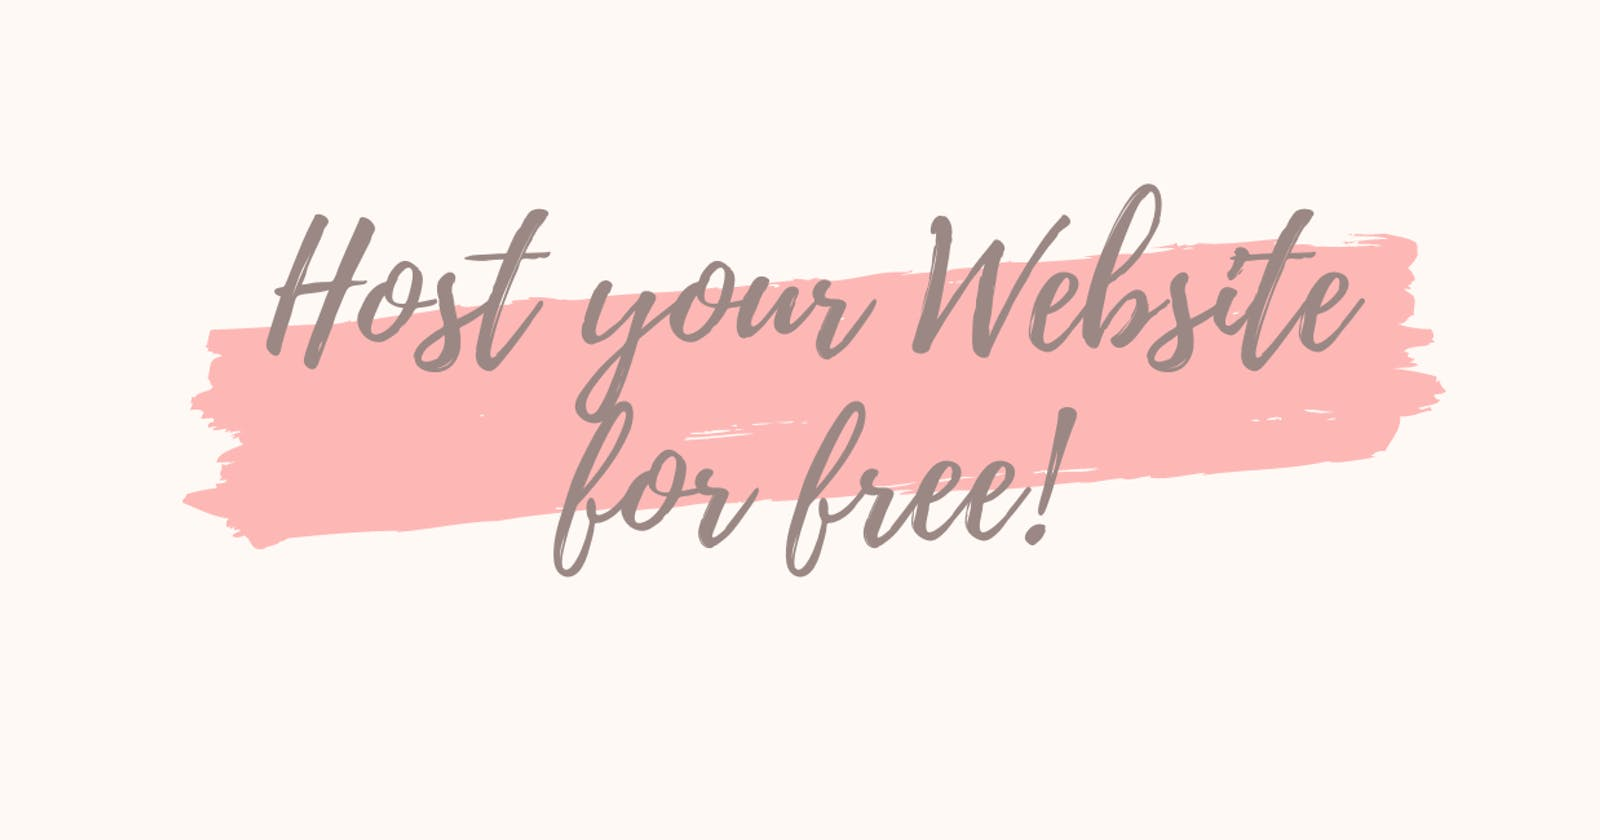 Want to Host Your Website for free ?